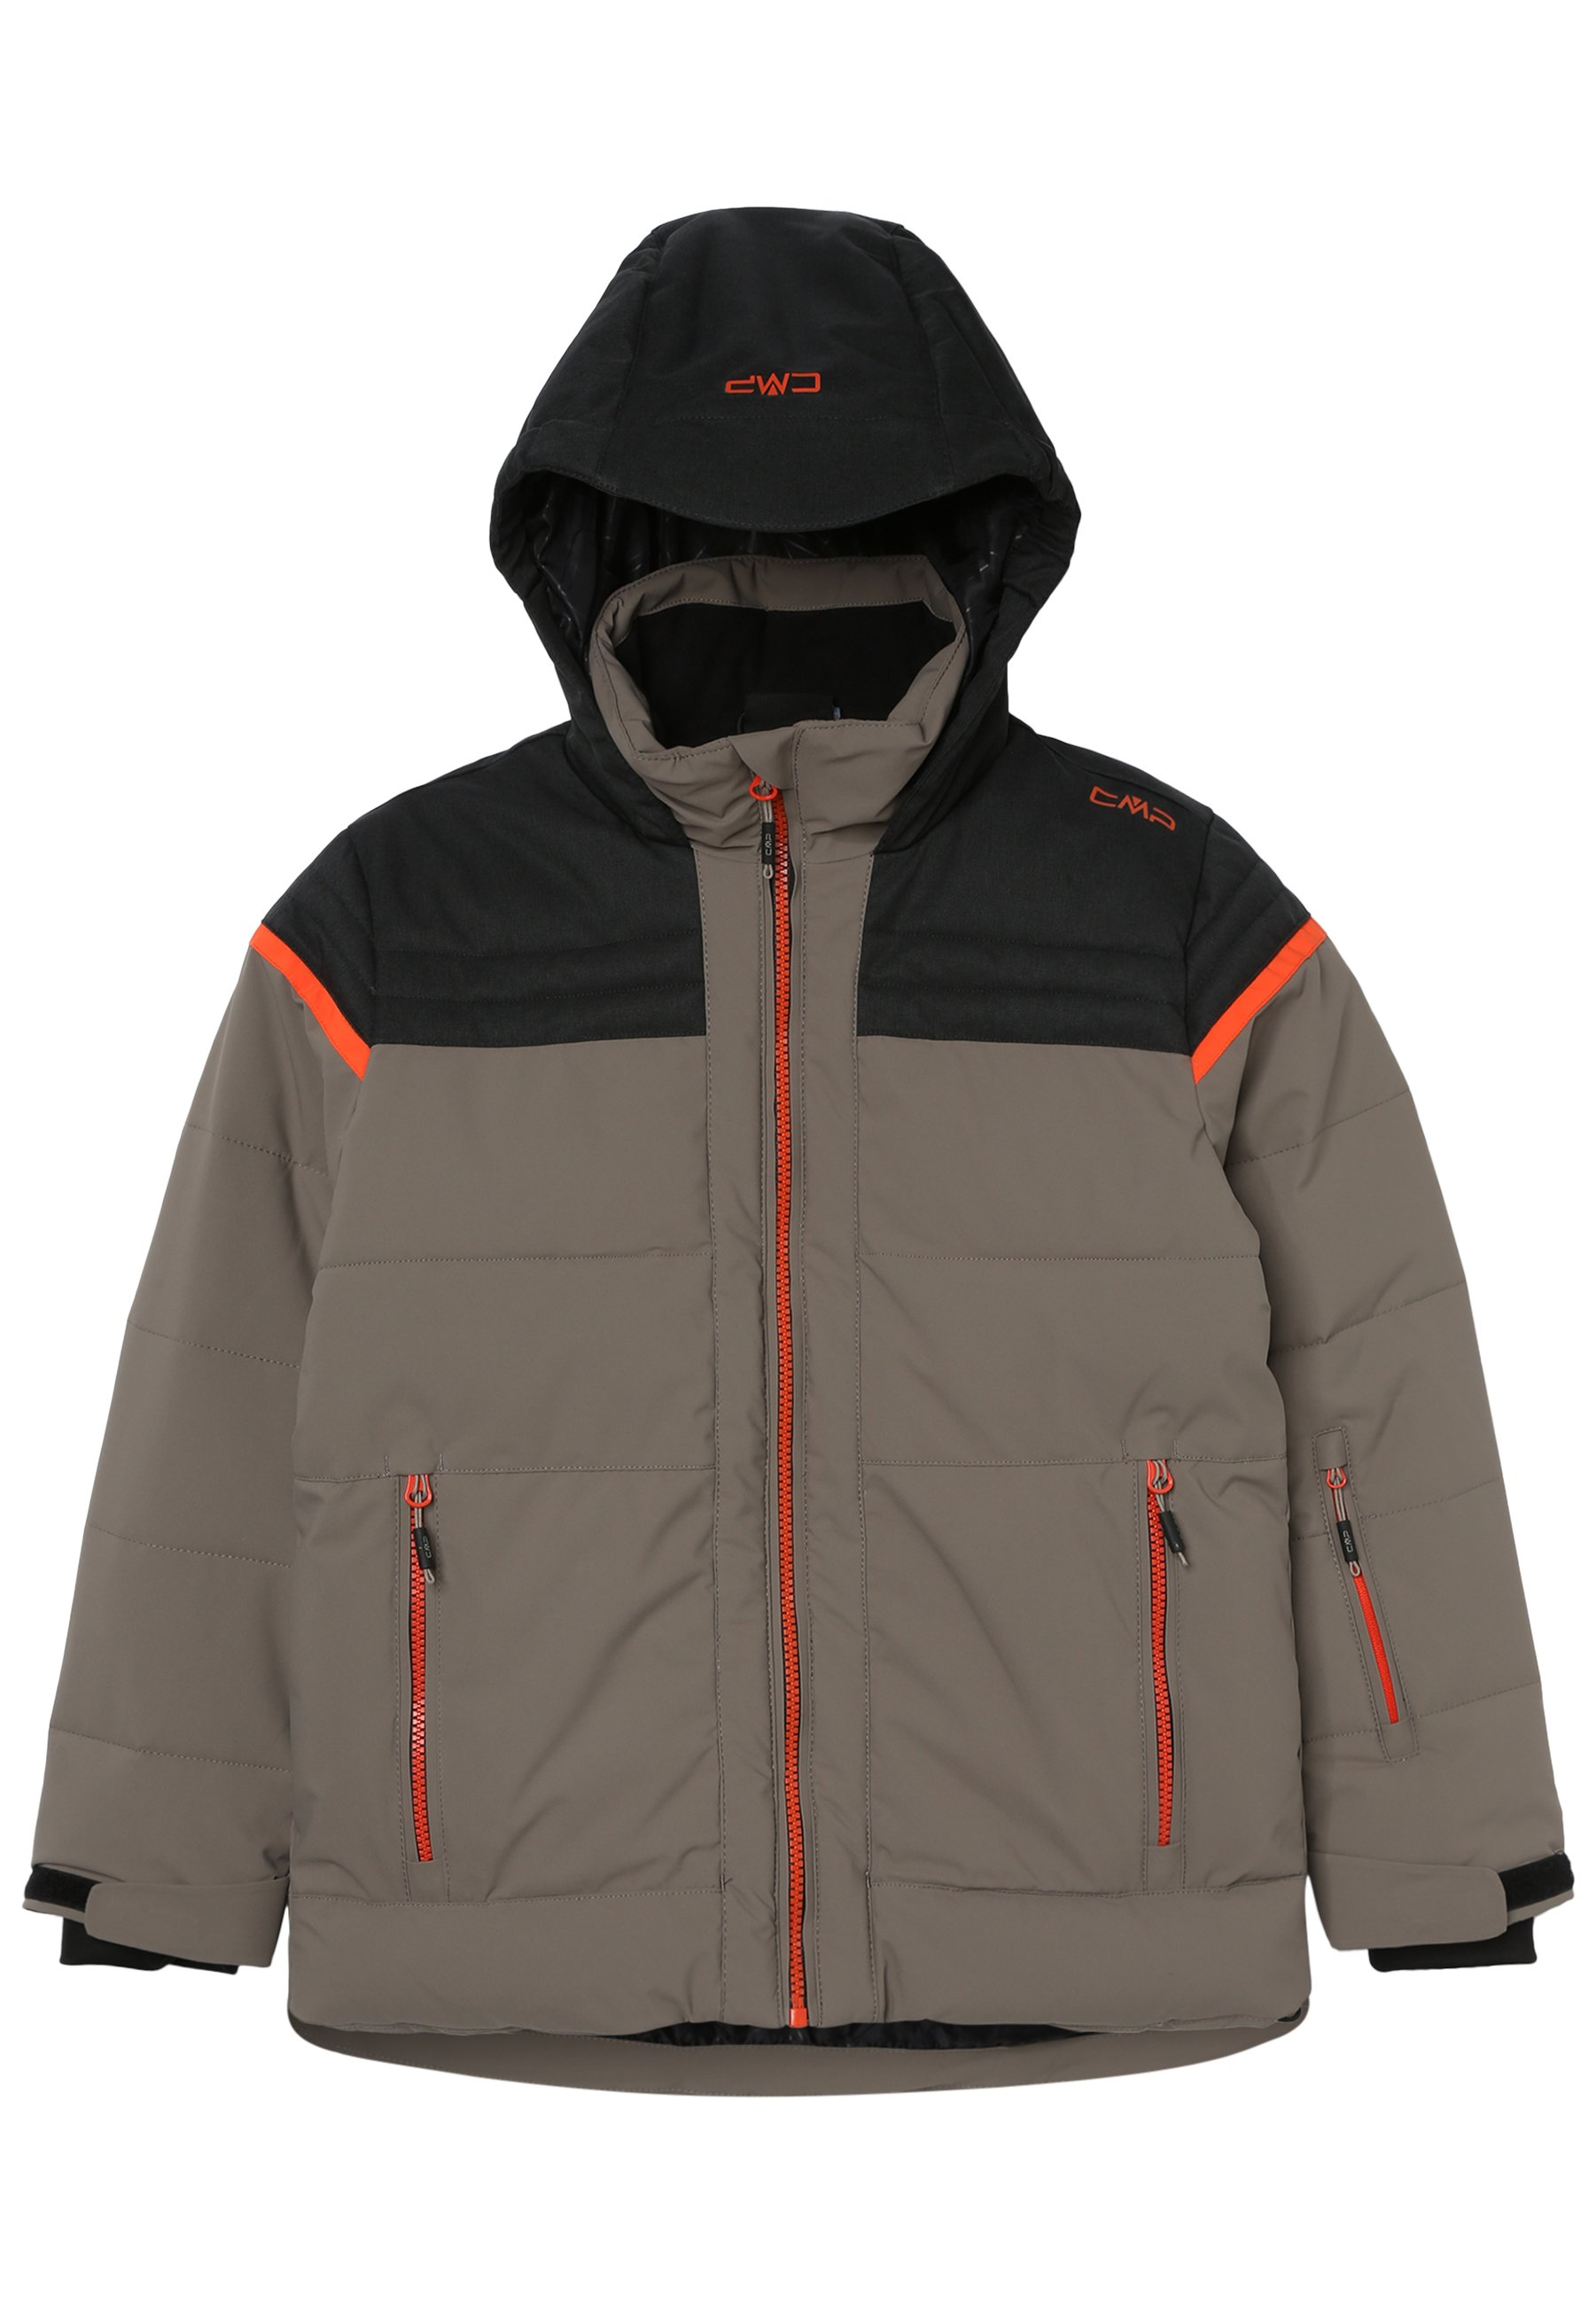 CMP Softshelljacke Jacke BOY JACKET FIX HOOD orange wasserdicht atmungsaktiv